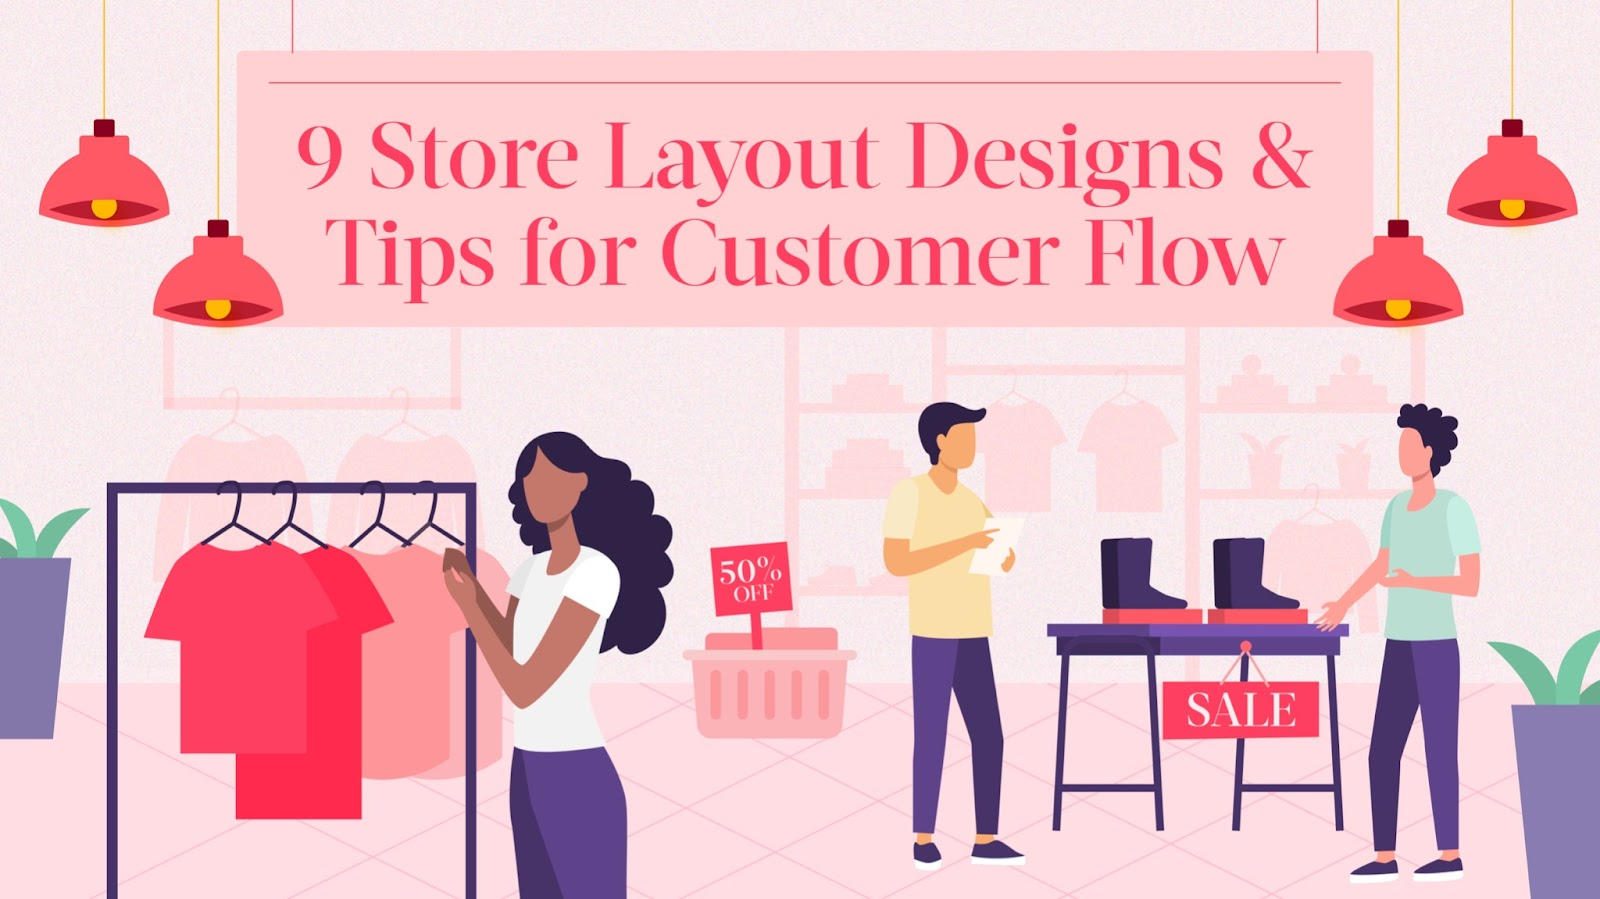 9 Store Layout Designs & Tips for Customer Flow